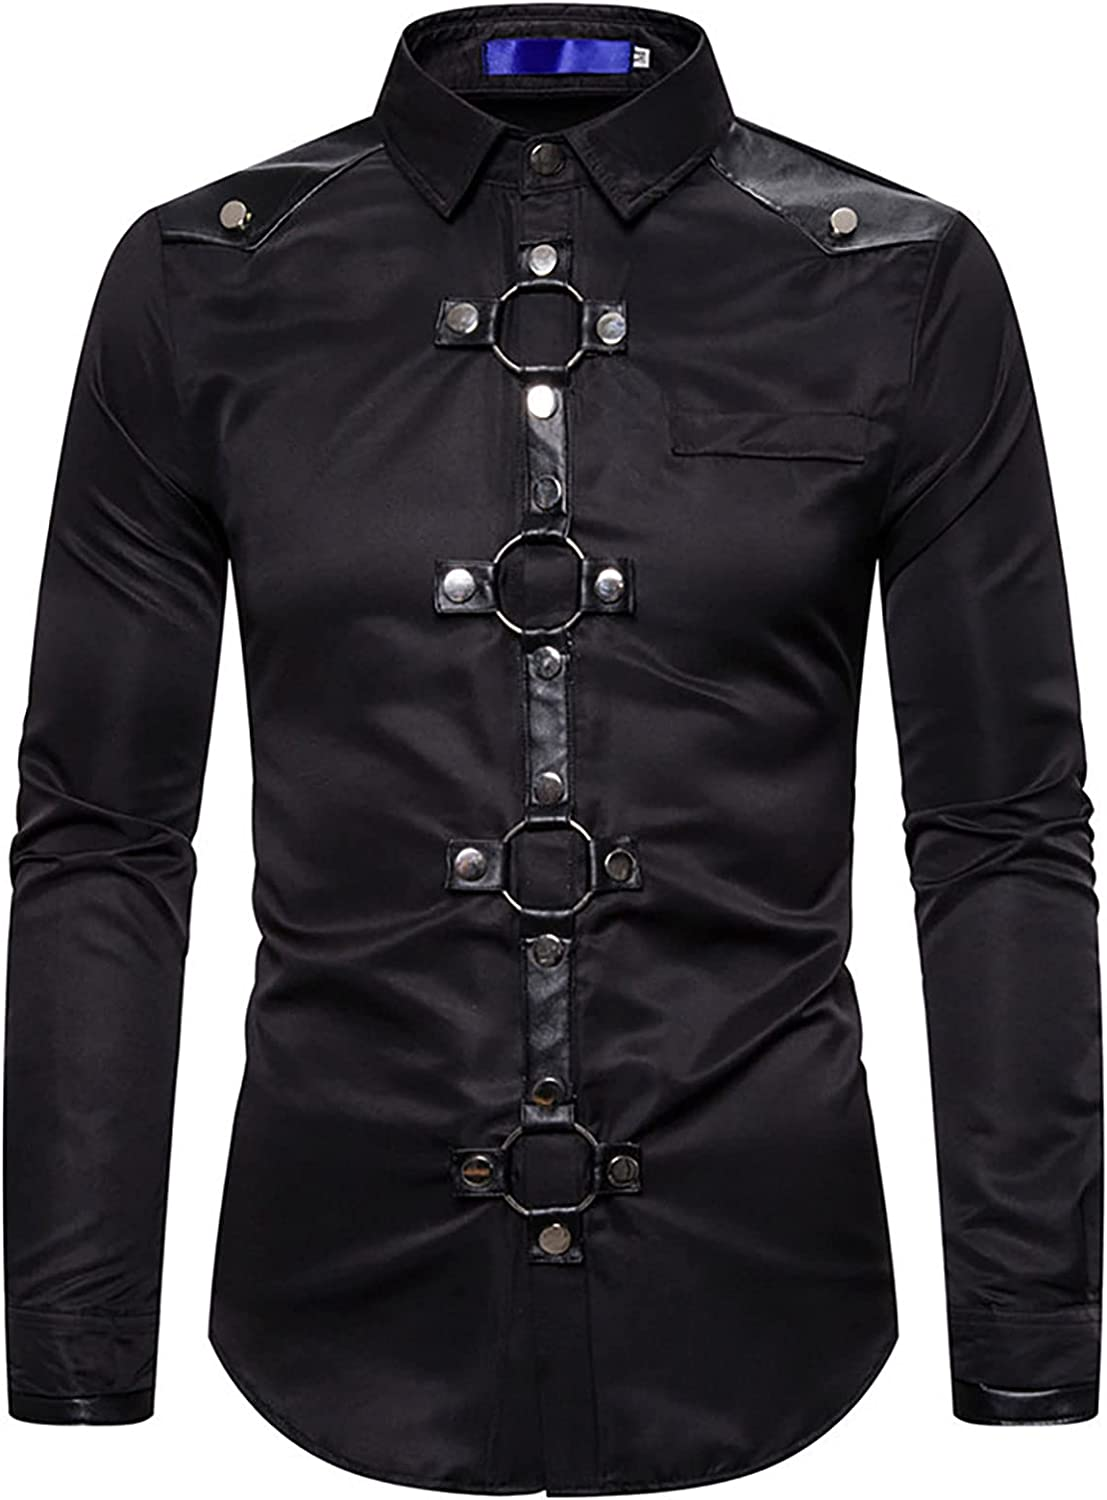 Sales for Award-winning store sale Aislor Men's Punk Leather Short Sleeve Rivet Shirts Rin Gothic O